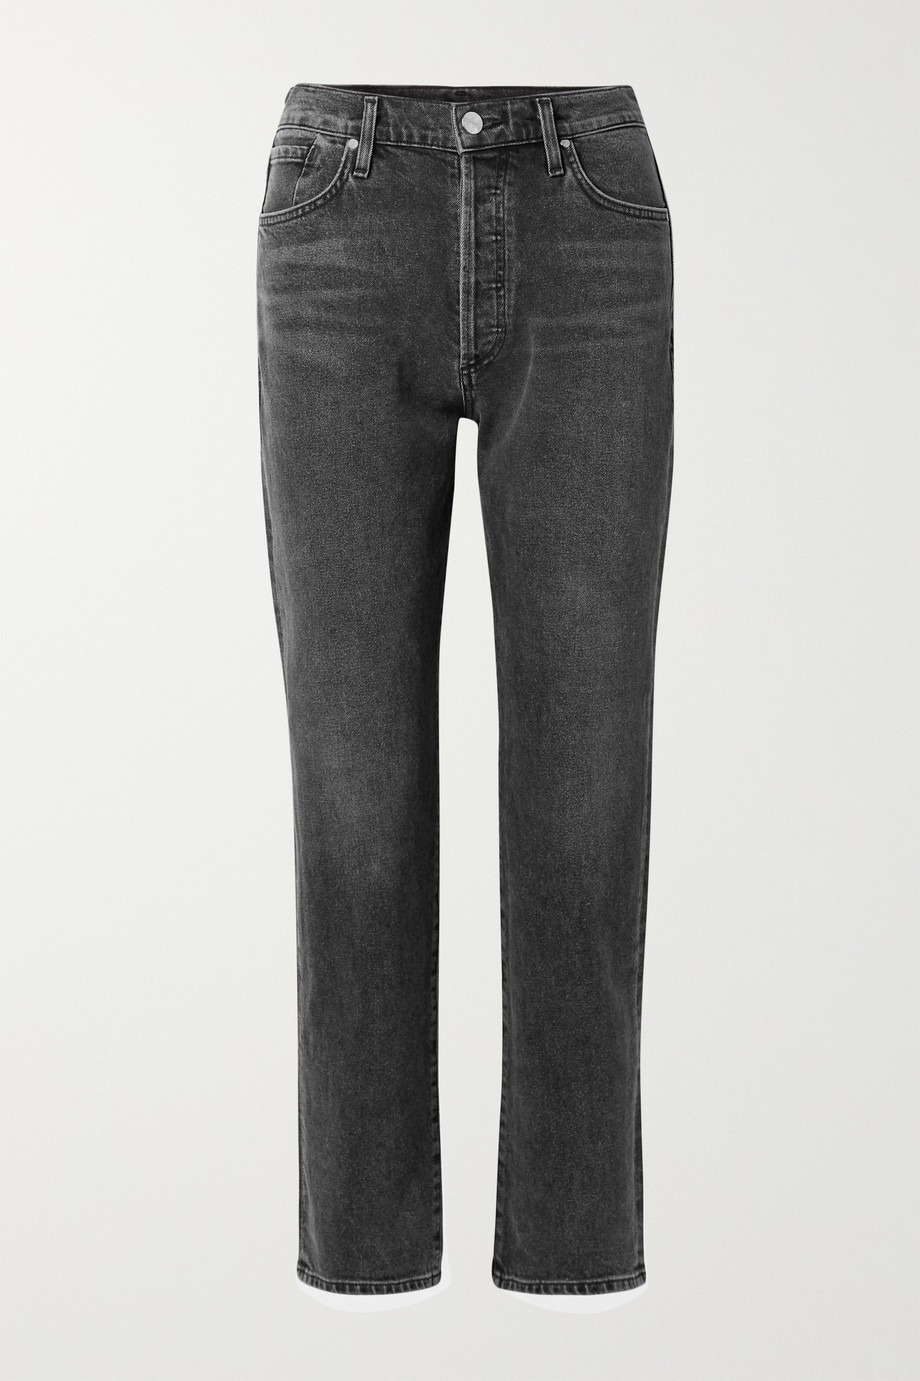 GOLDSIGN + NET SUSTAIN The Benefit high-rise straight-leg jeans